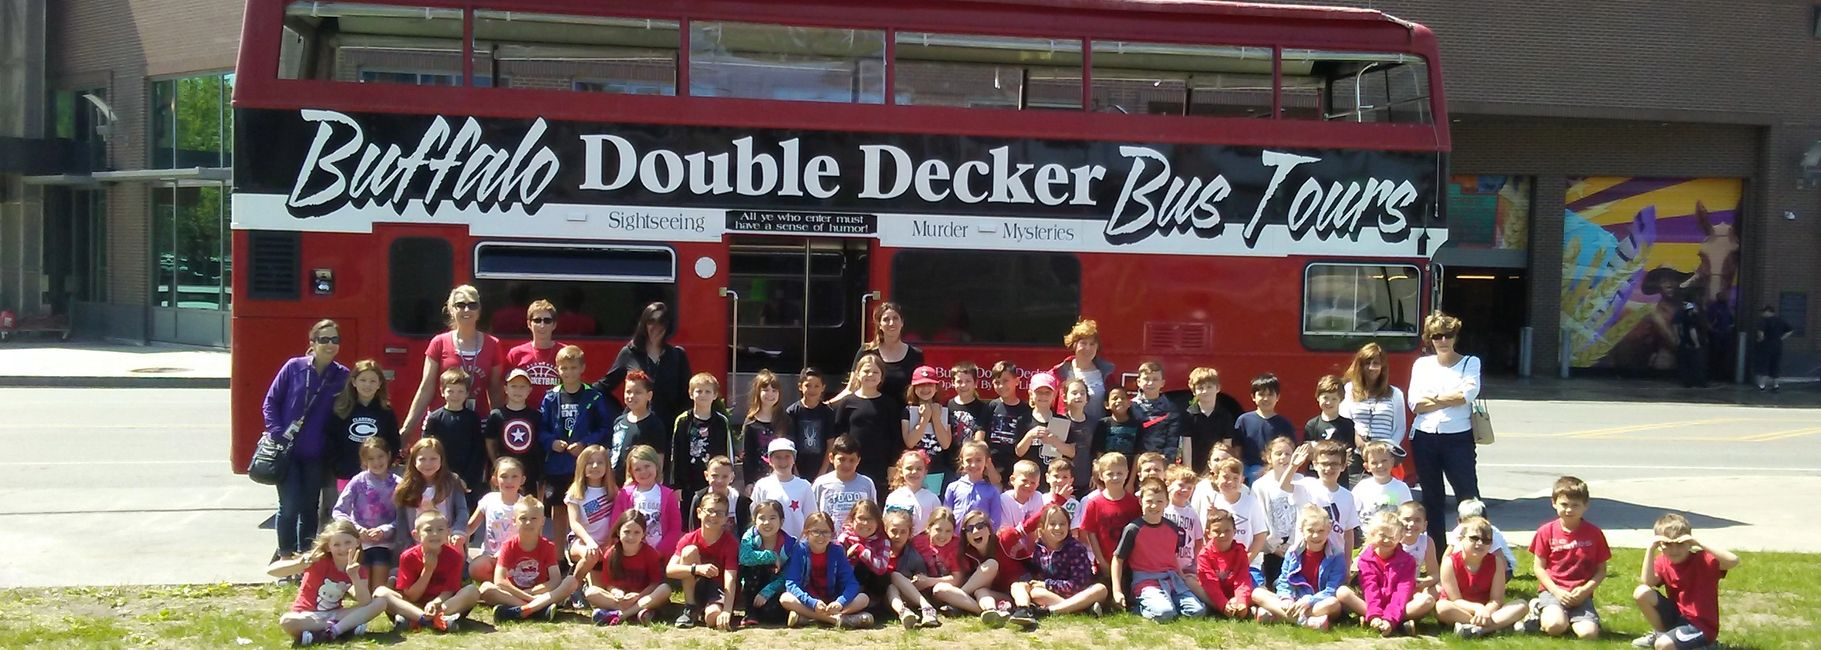 Student tours buffalo ny.  Educational tours aboard a double decker bus.